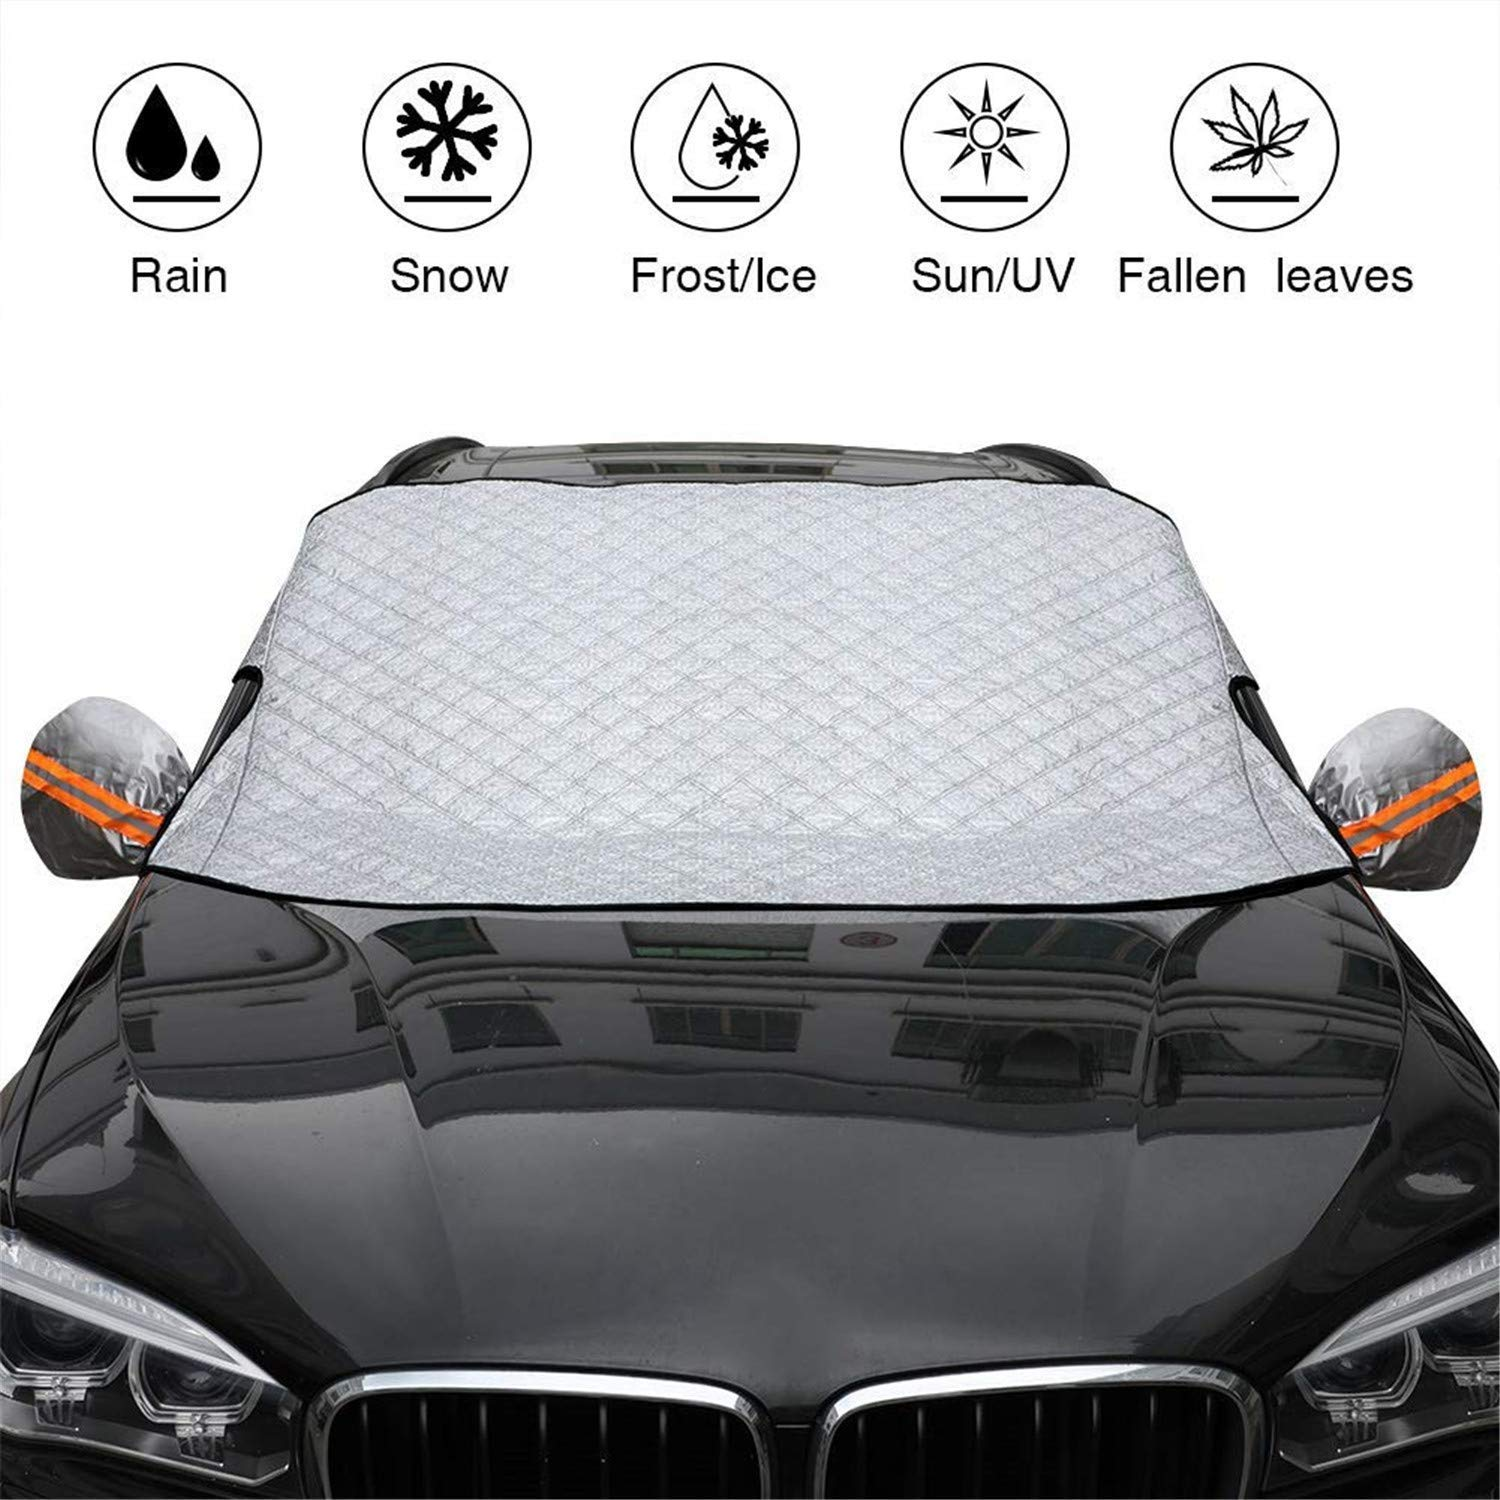 Car Windshield Snow Cover & Sun Shade Protector, HelpAccess Car Sun Shade Visor Shield Cover UV Protector, 57.87 Inch (width) X 40.16 Inch(height). 48 months warranty! HelpAccess Germany